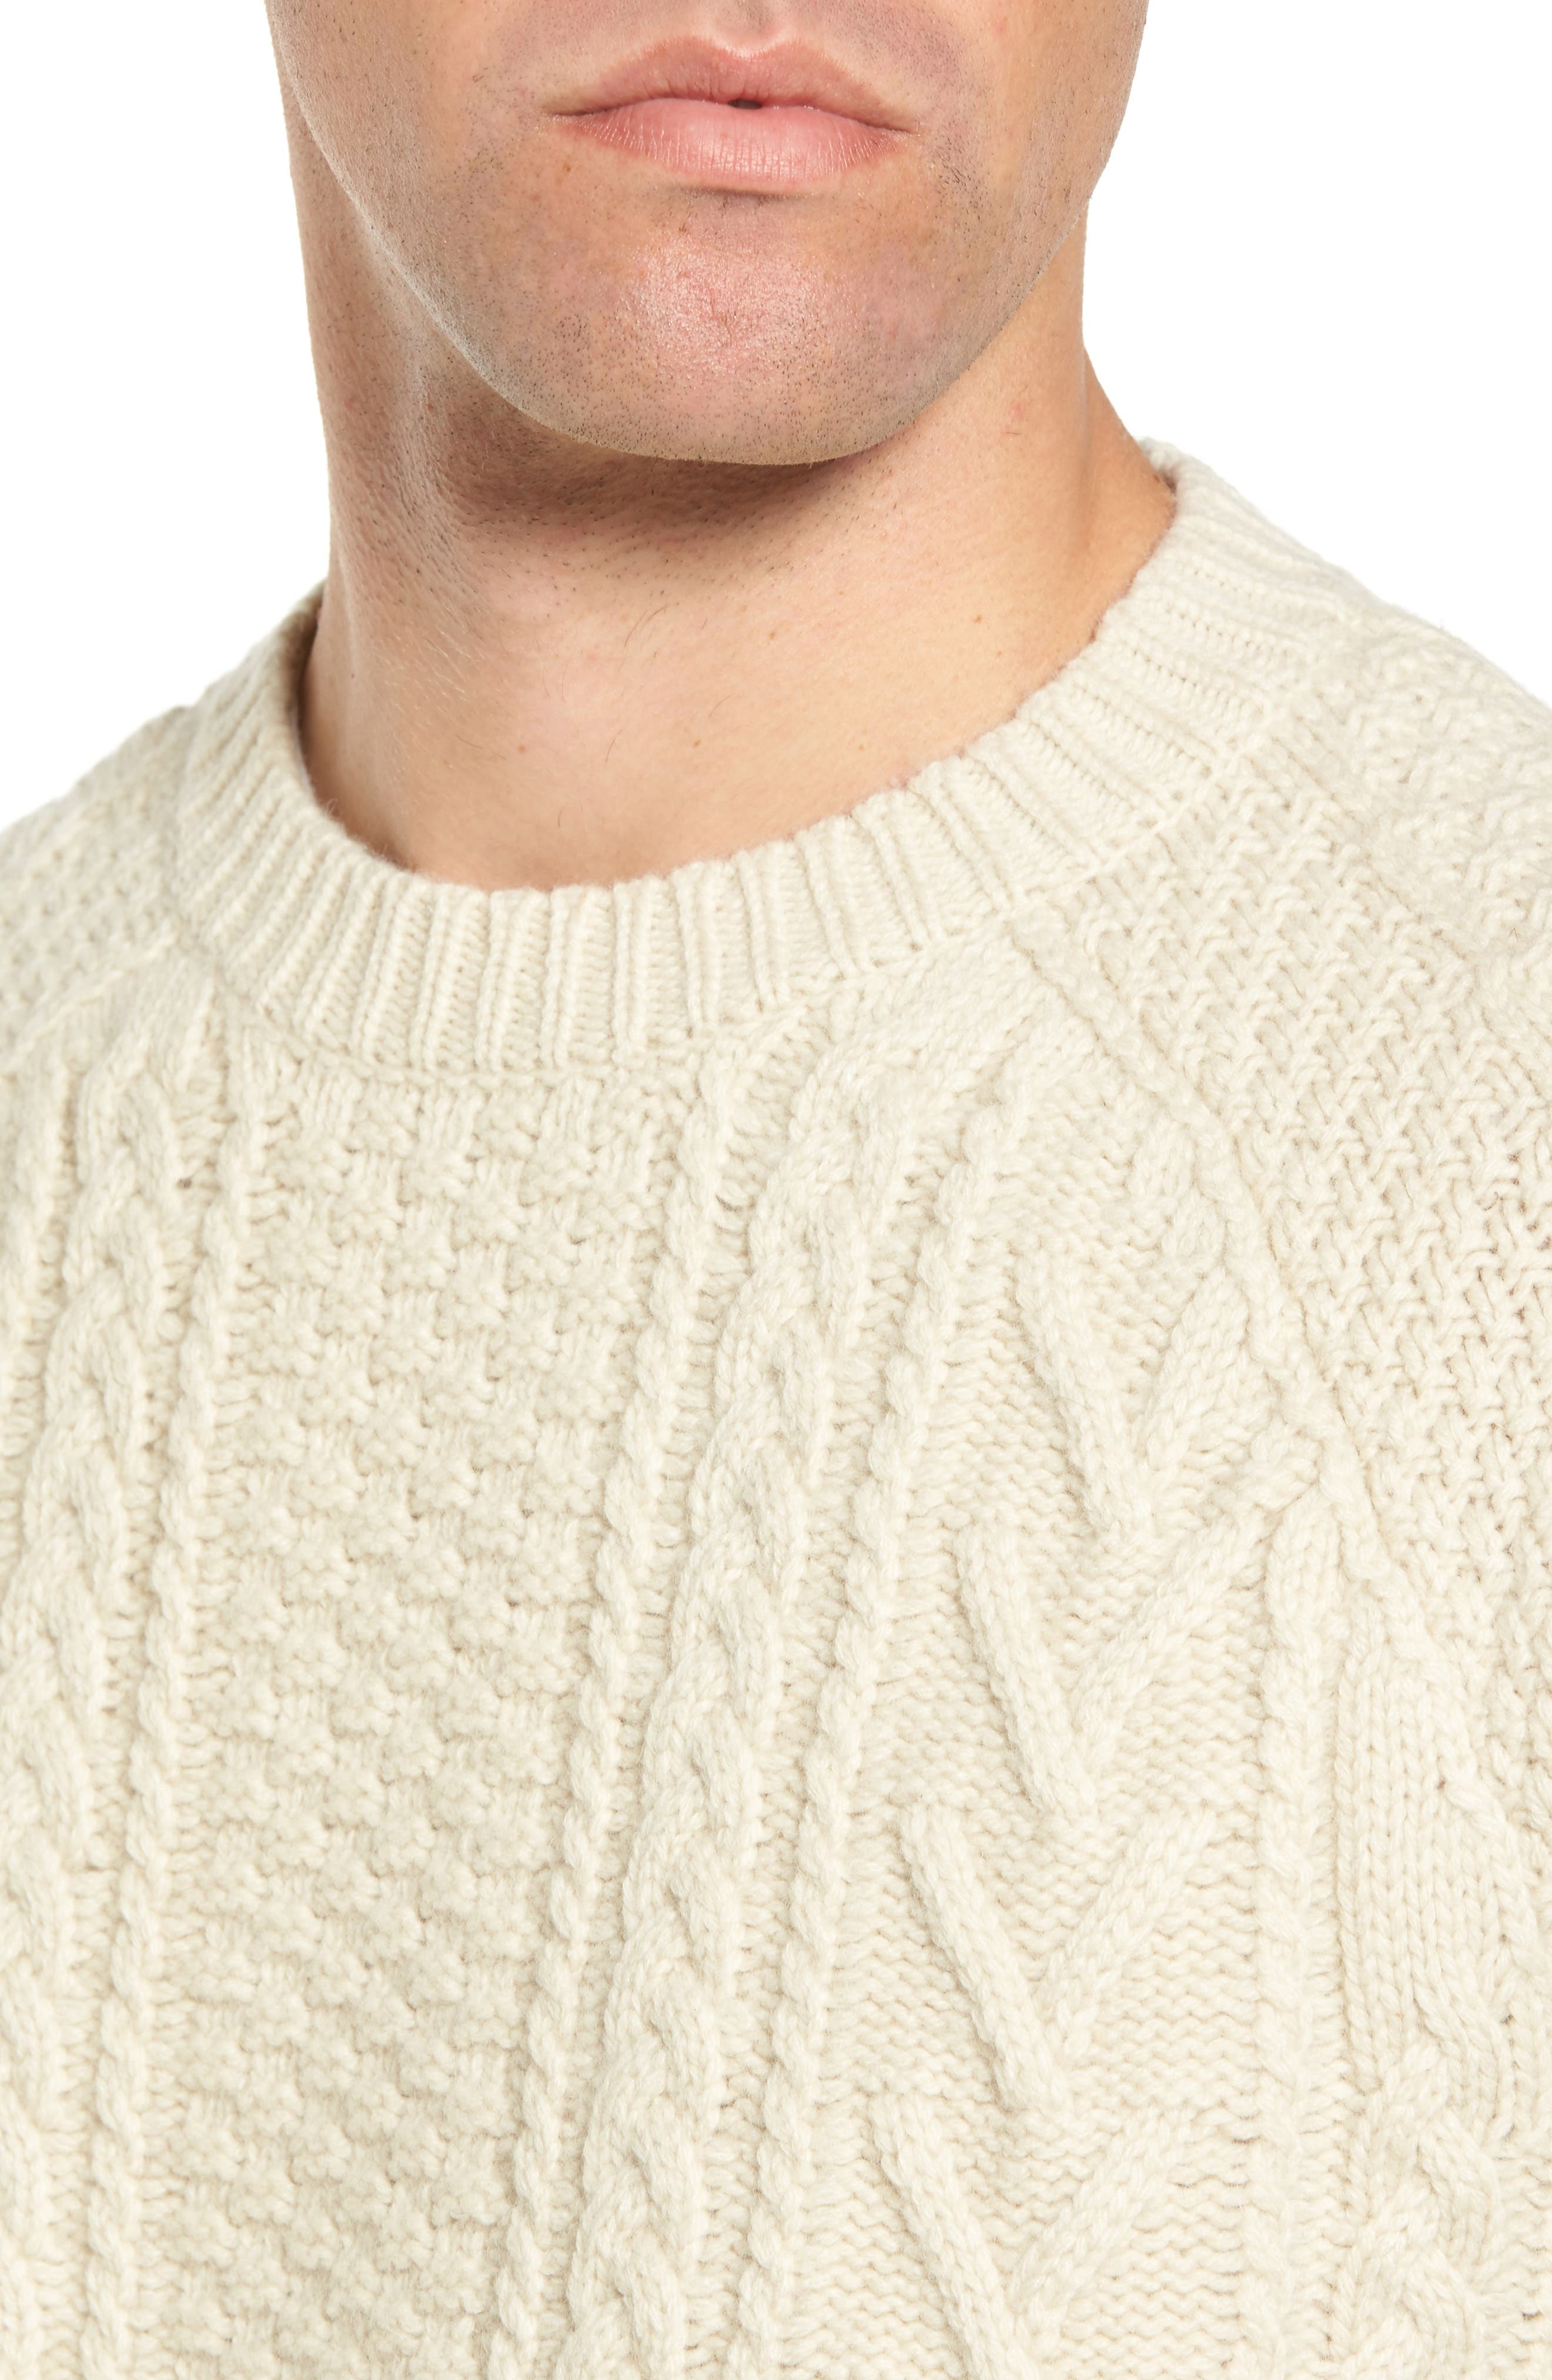 Fisherman Knit Wool Blend Sweater,                             Alternate thumbnail 4, color,                             OFF WHITE